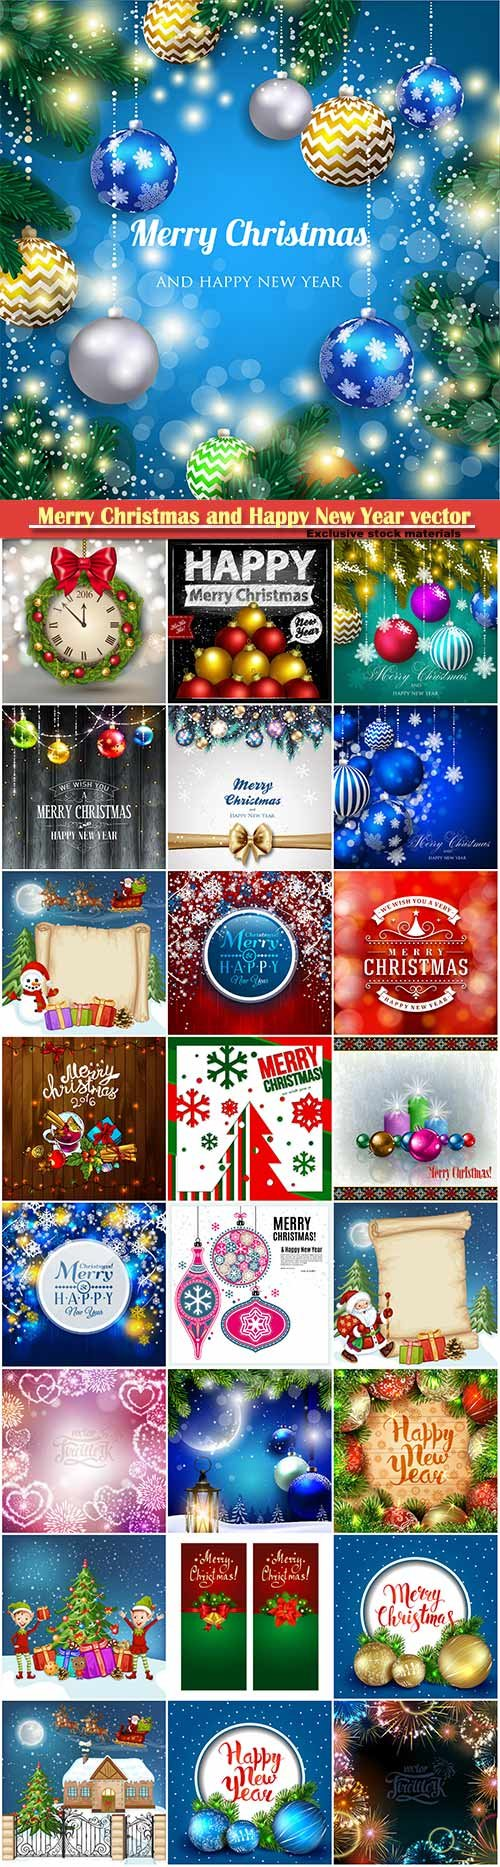 Merry Christmas and Happy New Year vector design # 21